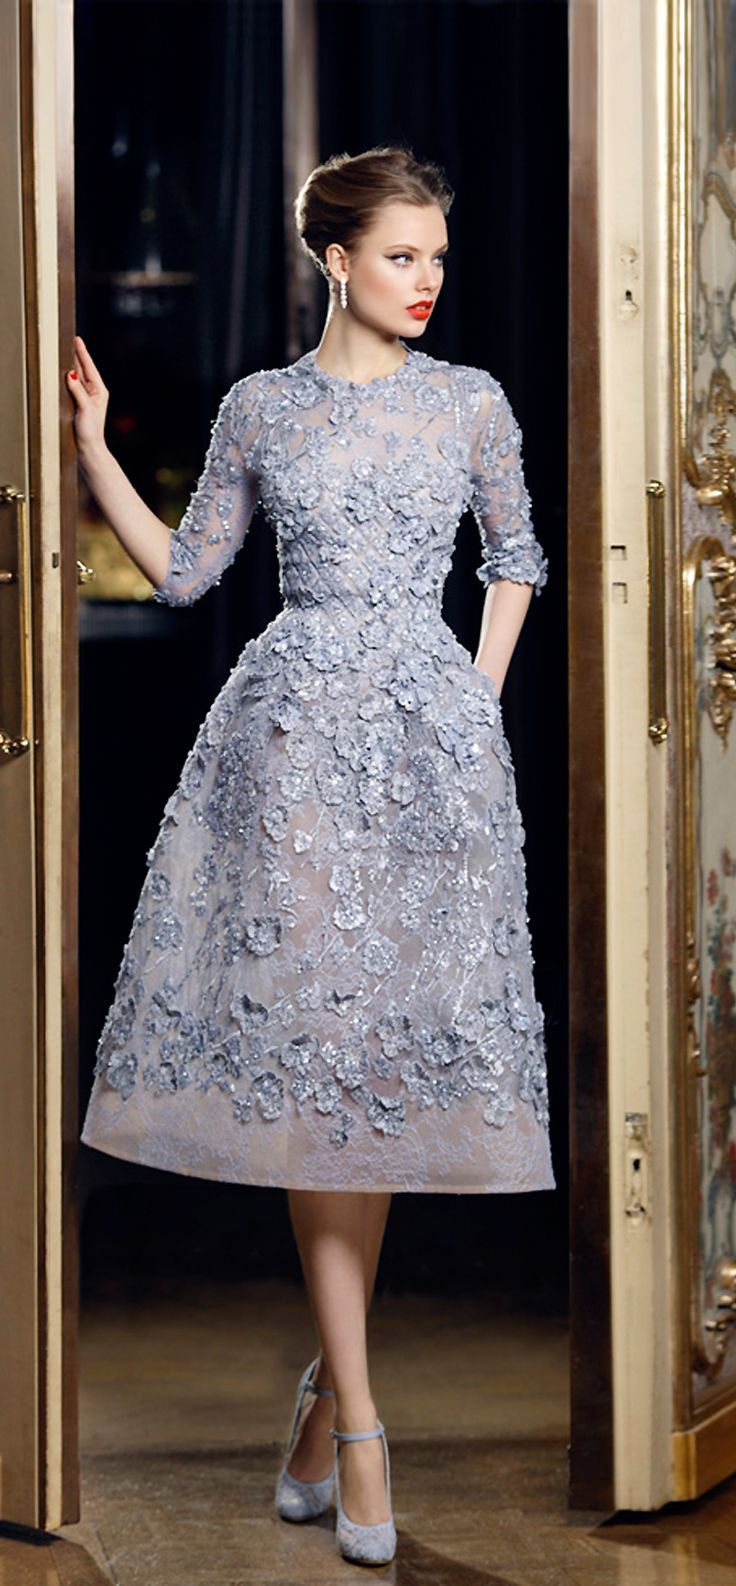 Elie Saab at Couture Spring 2013 in 2019  c7f0a2843977